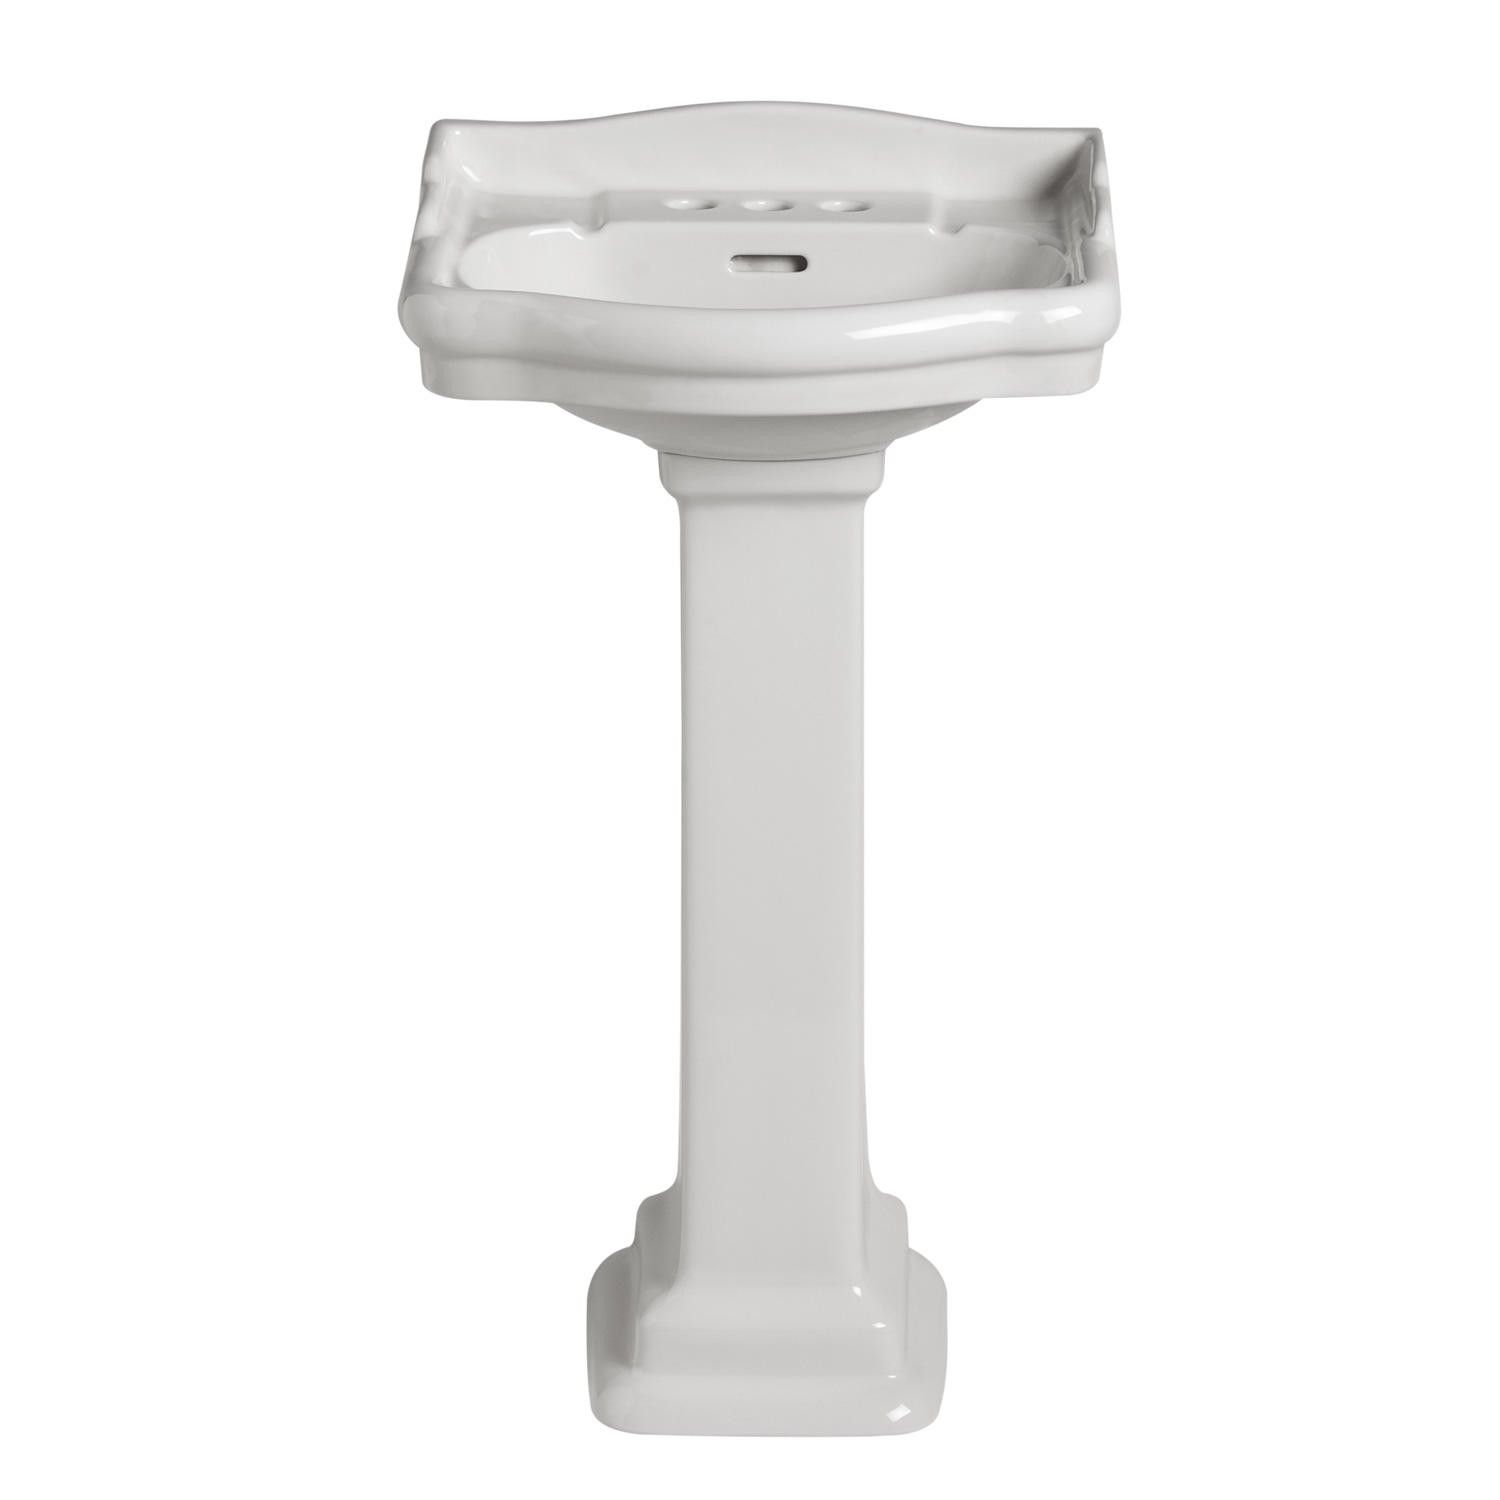 mini pedestal sink. Bathroom Pedestal Sinks | Home / Stanford Mini Sink